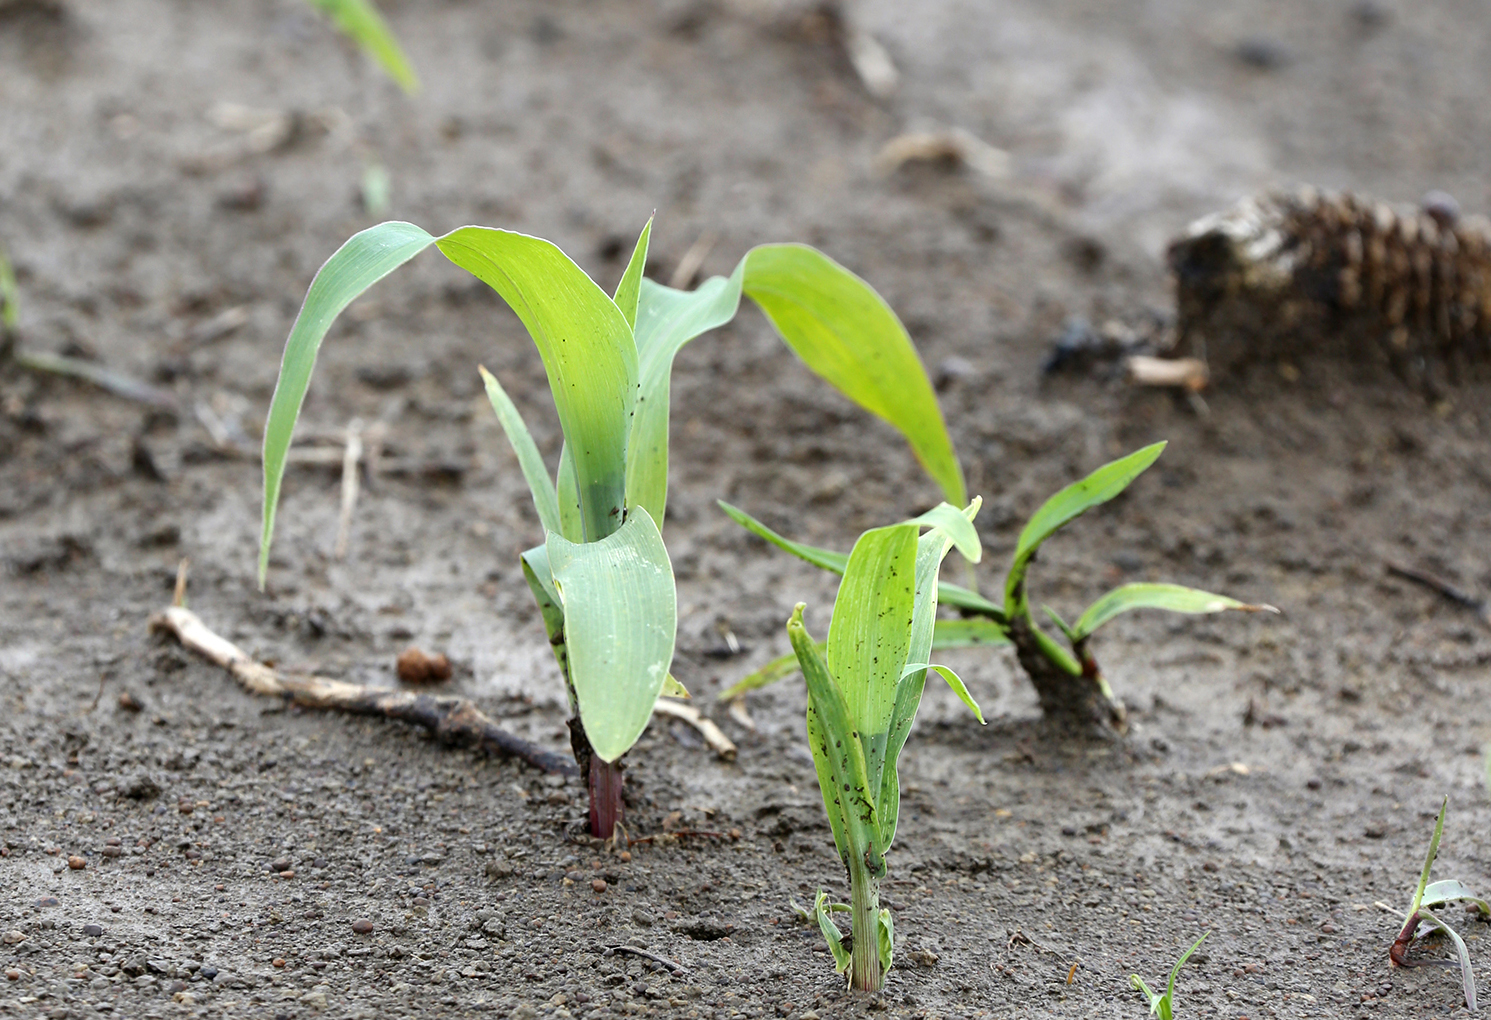 In the Corn Field: Water and Nitrogen Loss